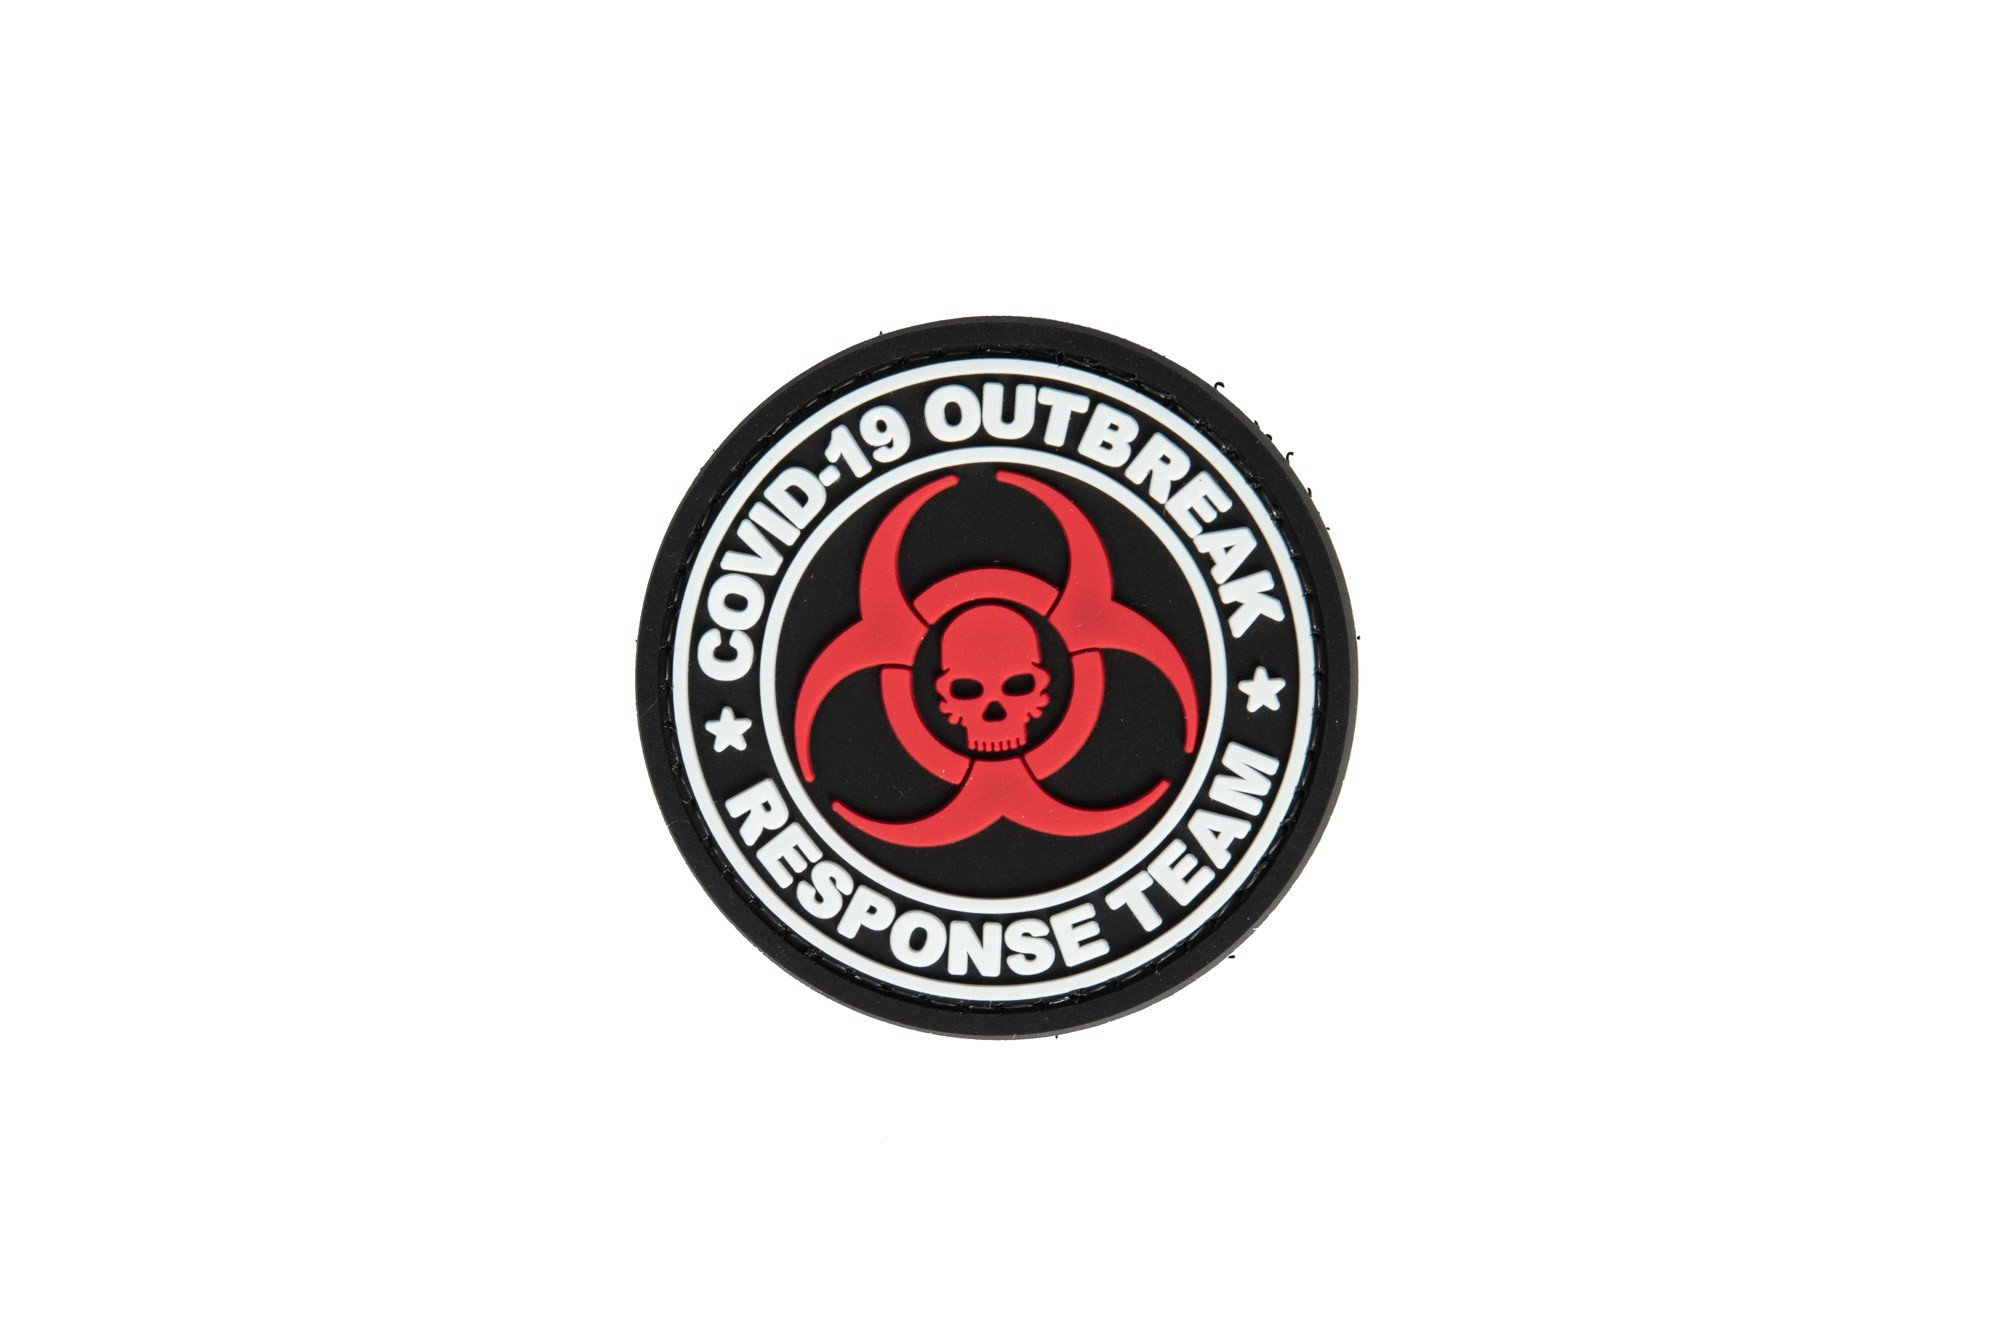 """GFT """"Covid response team"""" Patch"""